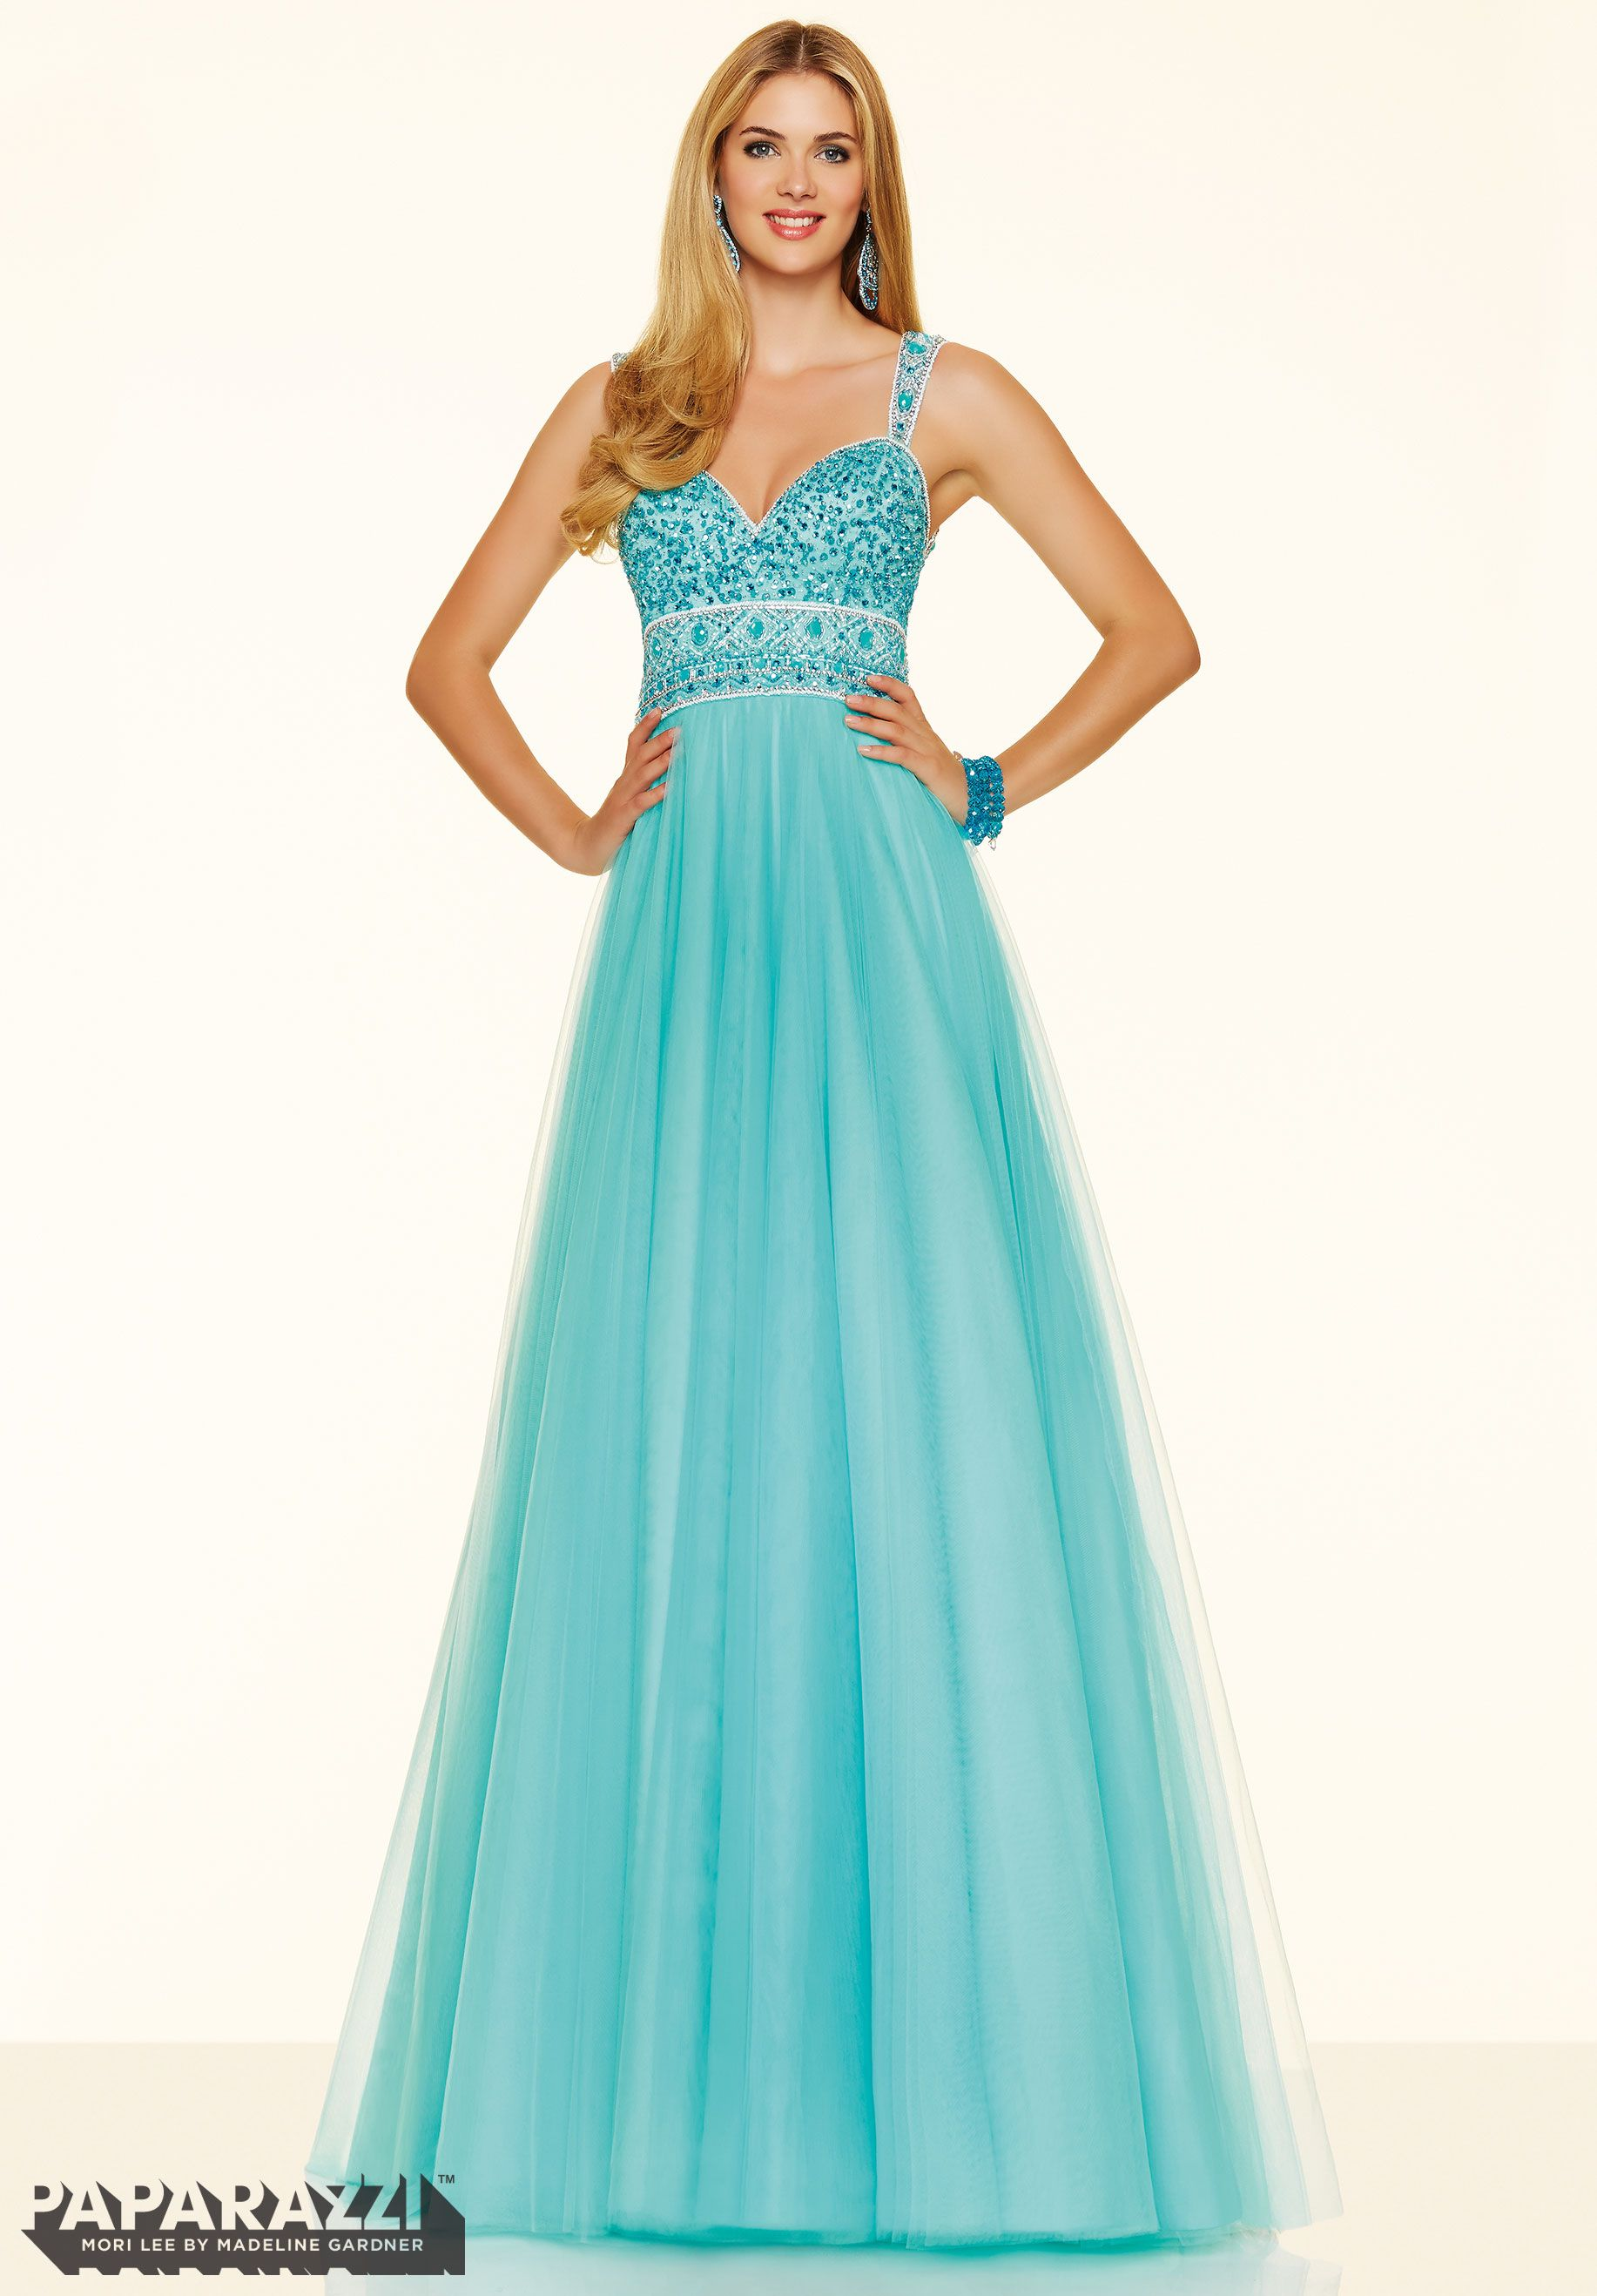 Prom Dresses by Paparazzi Prom - Dress Style 98009 | PROM ...